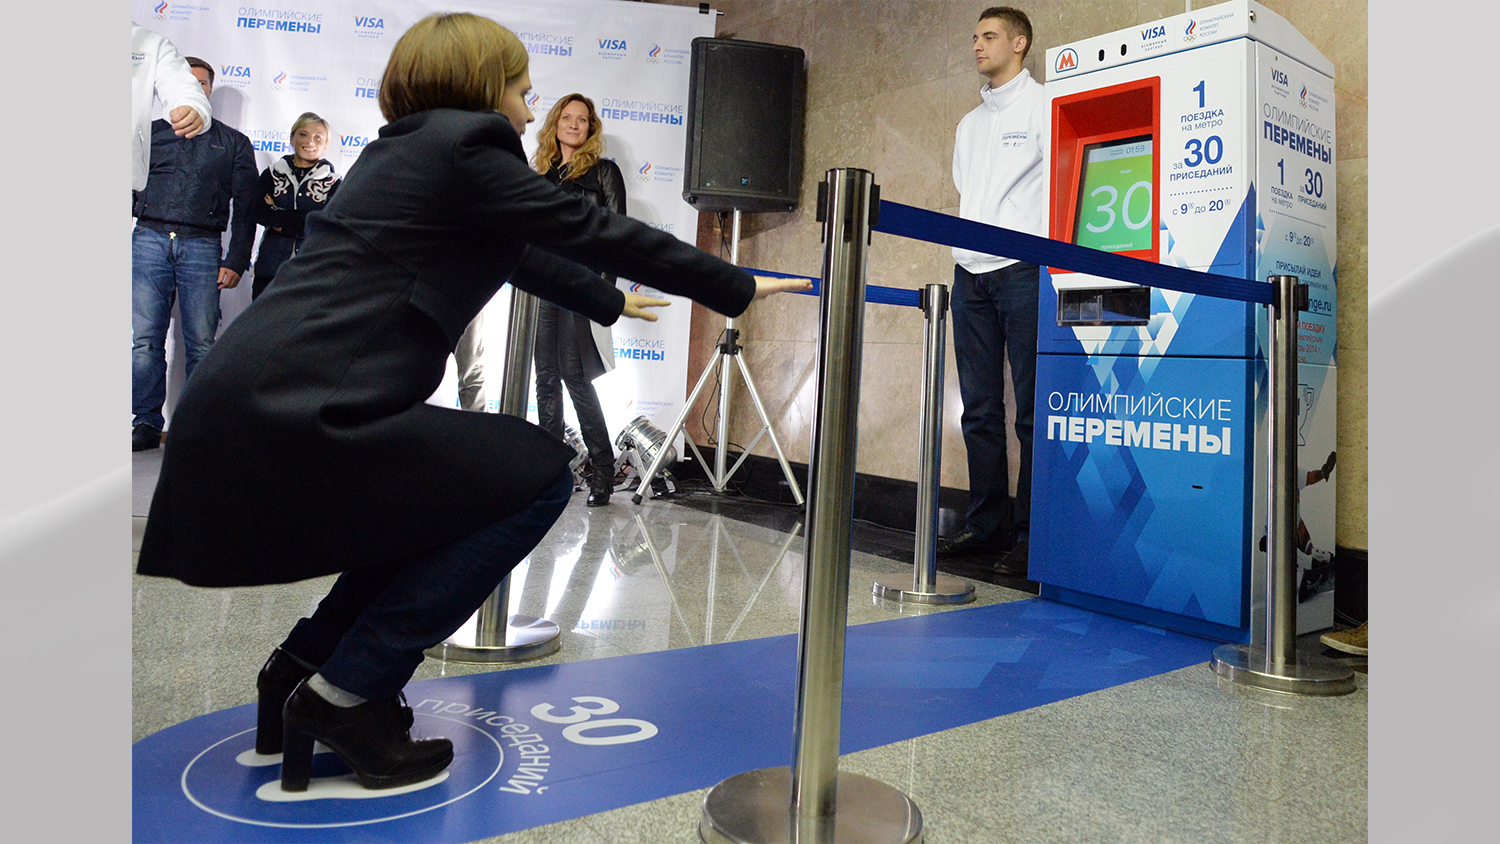 PHOTO: A young woman squats in front of a vending machine that sells the subway tickets for squats instead of money during the machine's presentation at the Vystavochaya metro station in western Moscow, on Nov. 8, 2013.